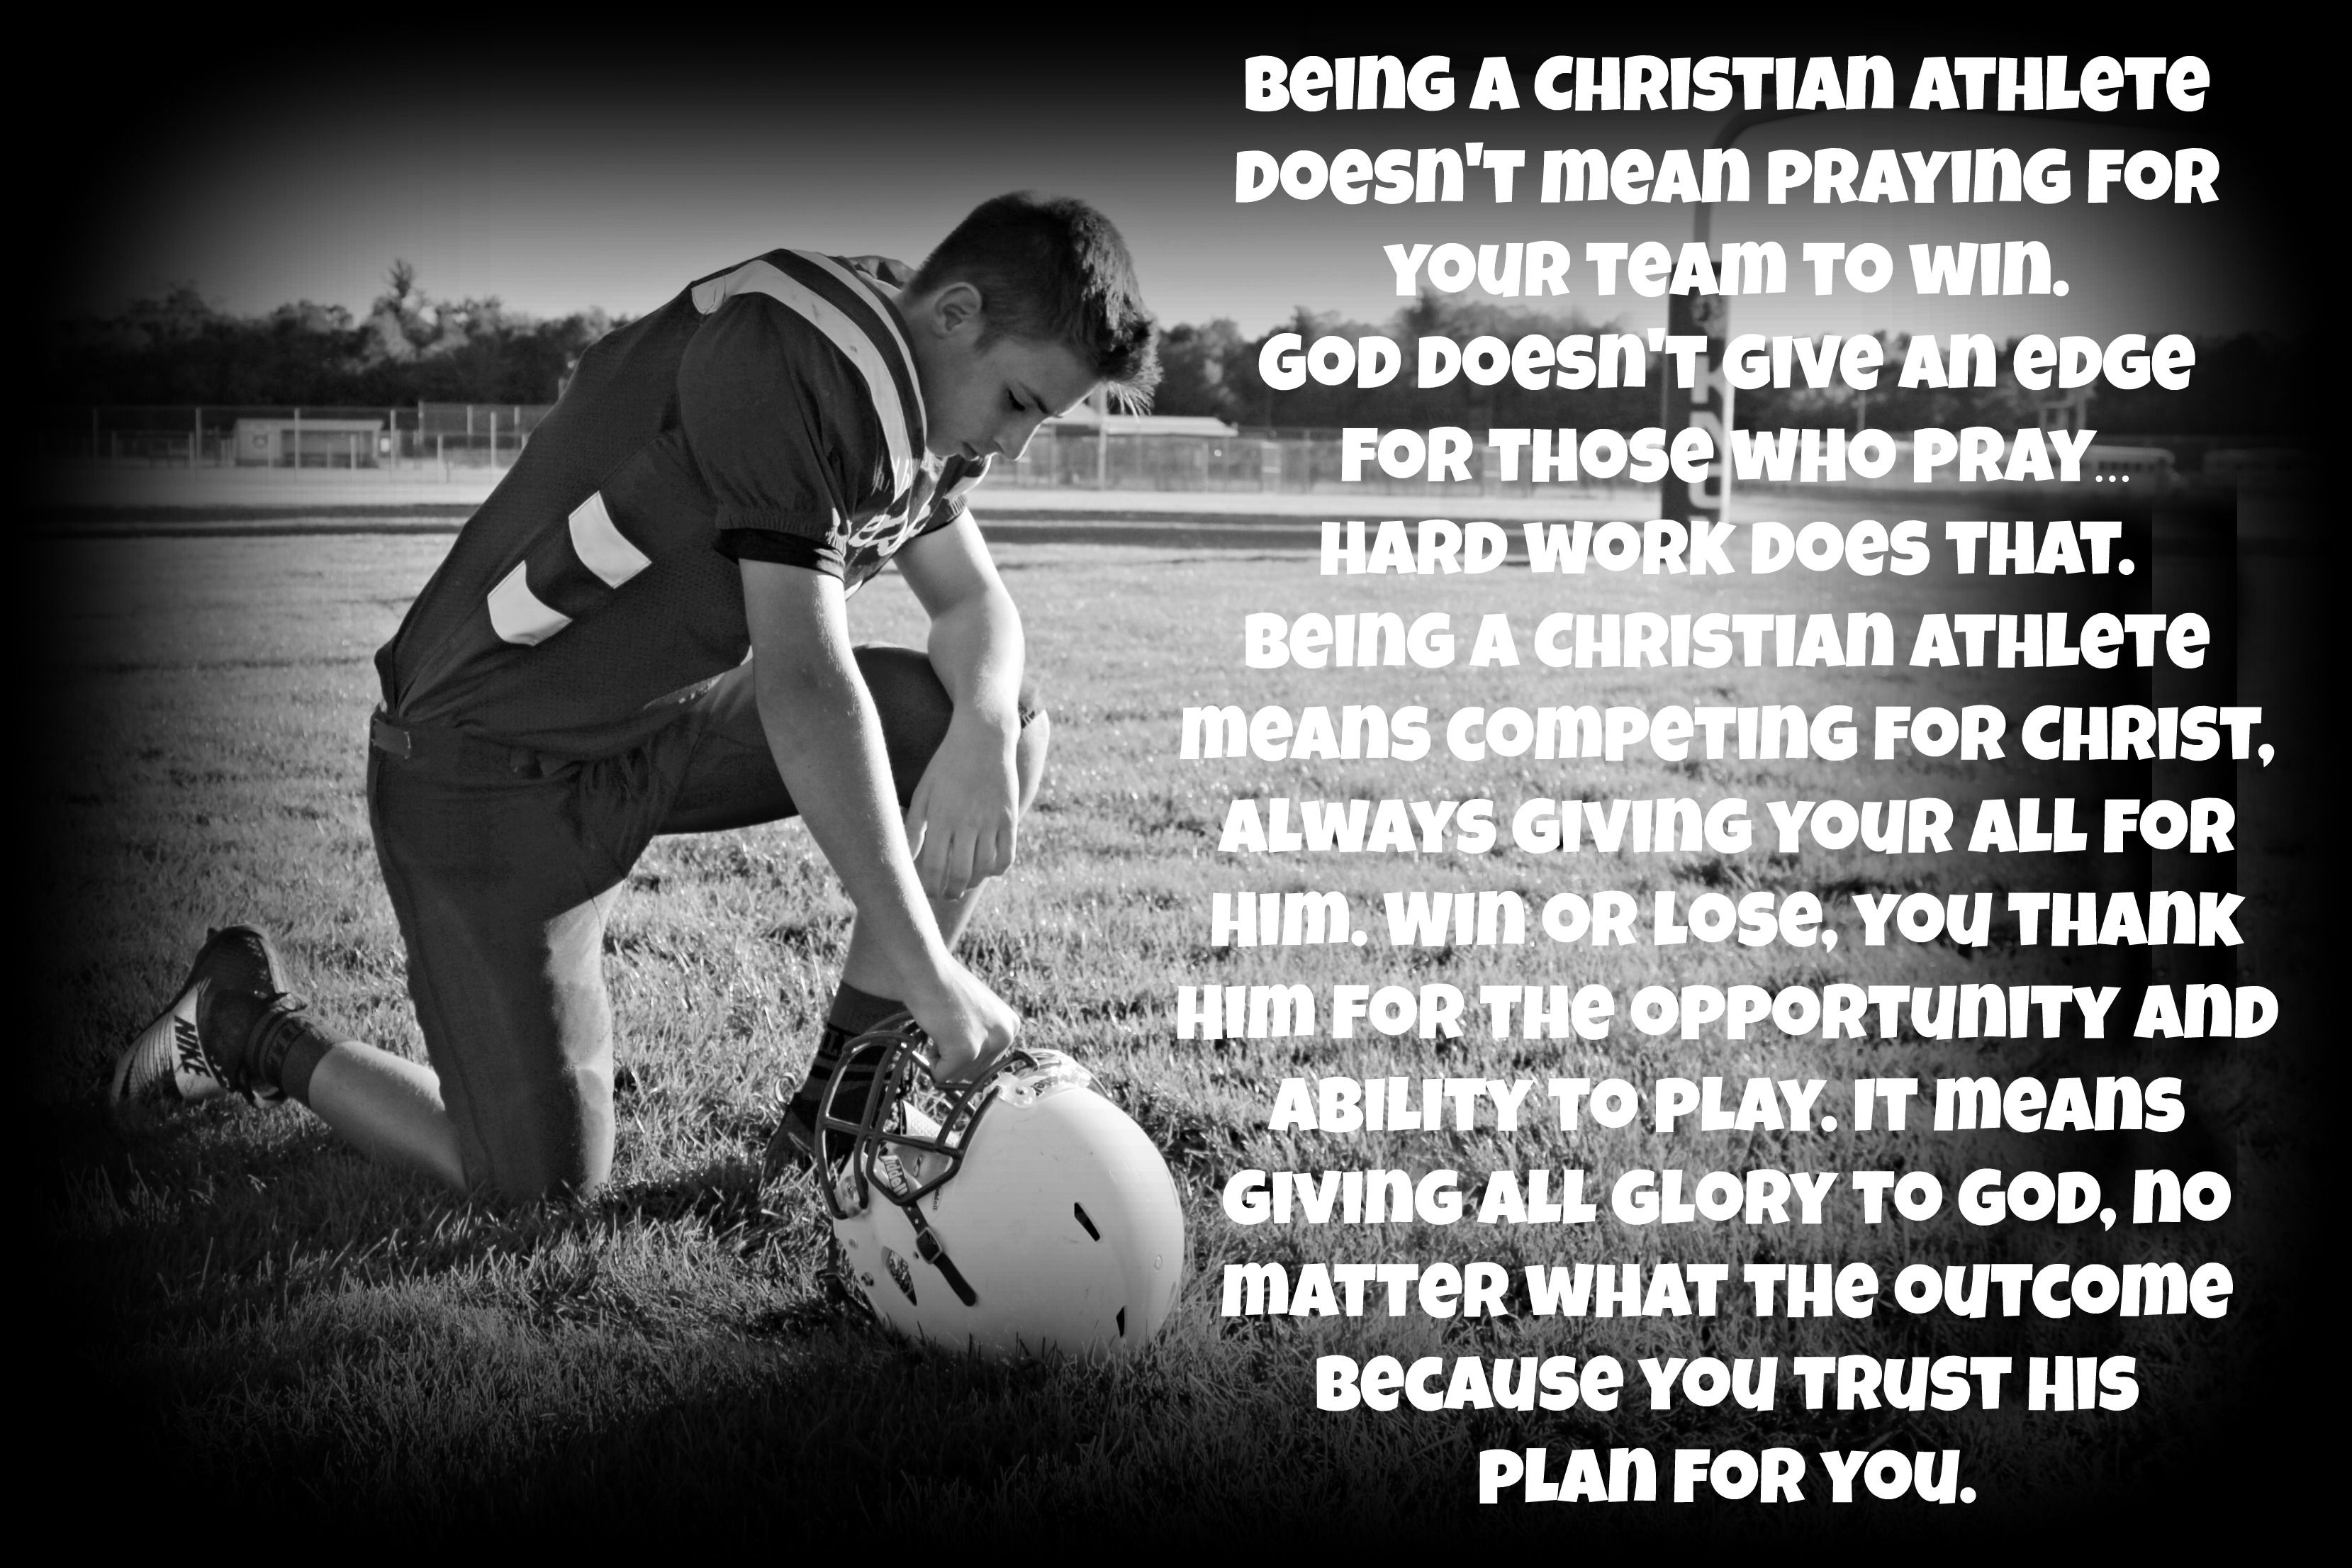 Being a Christian athlete doesn't mean praying for your